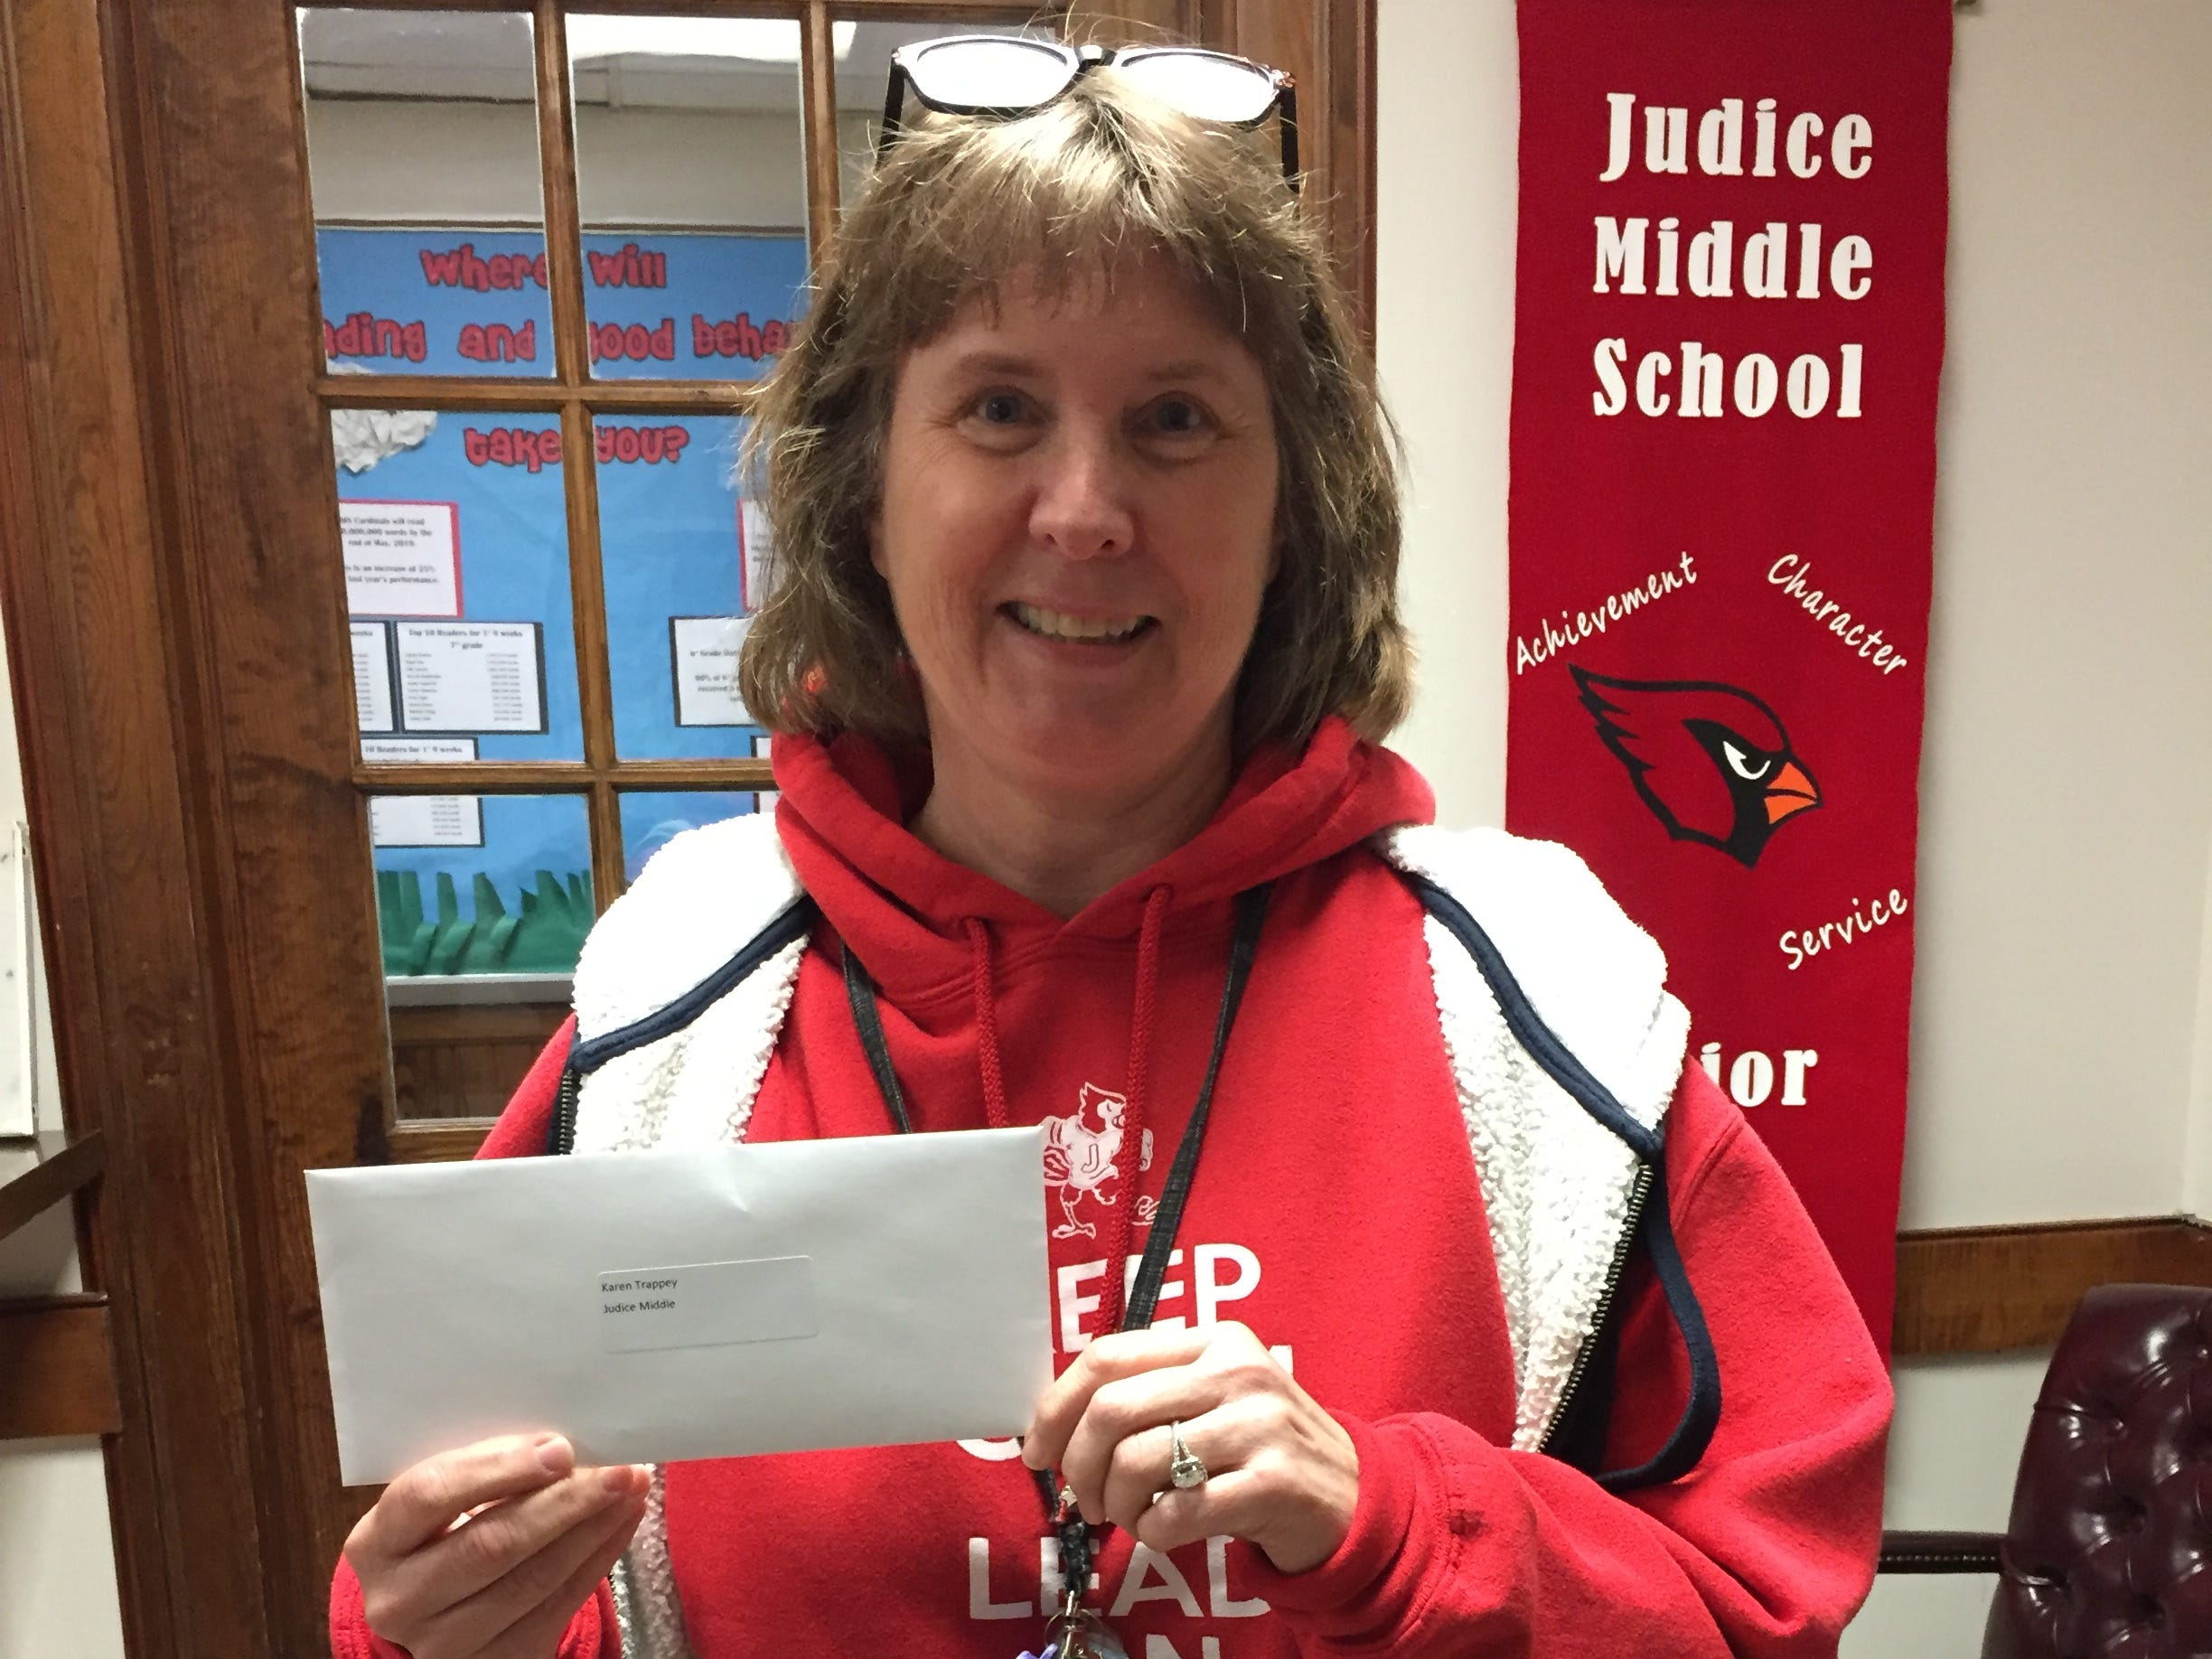 Judice Middle School teacher Karen Trappey received a gift card as a part of The Daily Advertiser's Adopt-A-Teacher drive.  Energy Transfer provided a $25,000 donation and Community Foundation of Acadiana assisted in securing gift cards for more than 400 teachers at 134 schools.